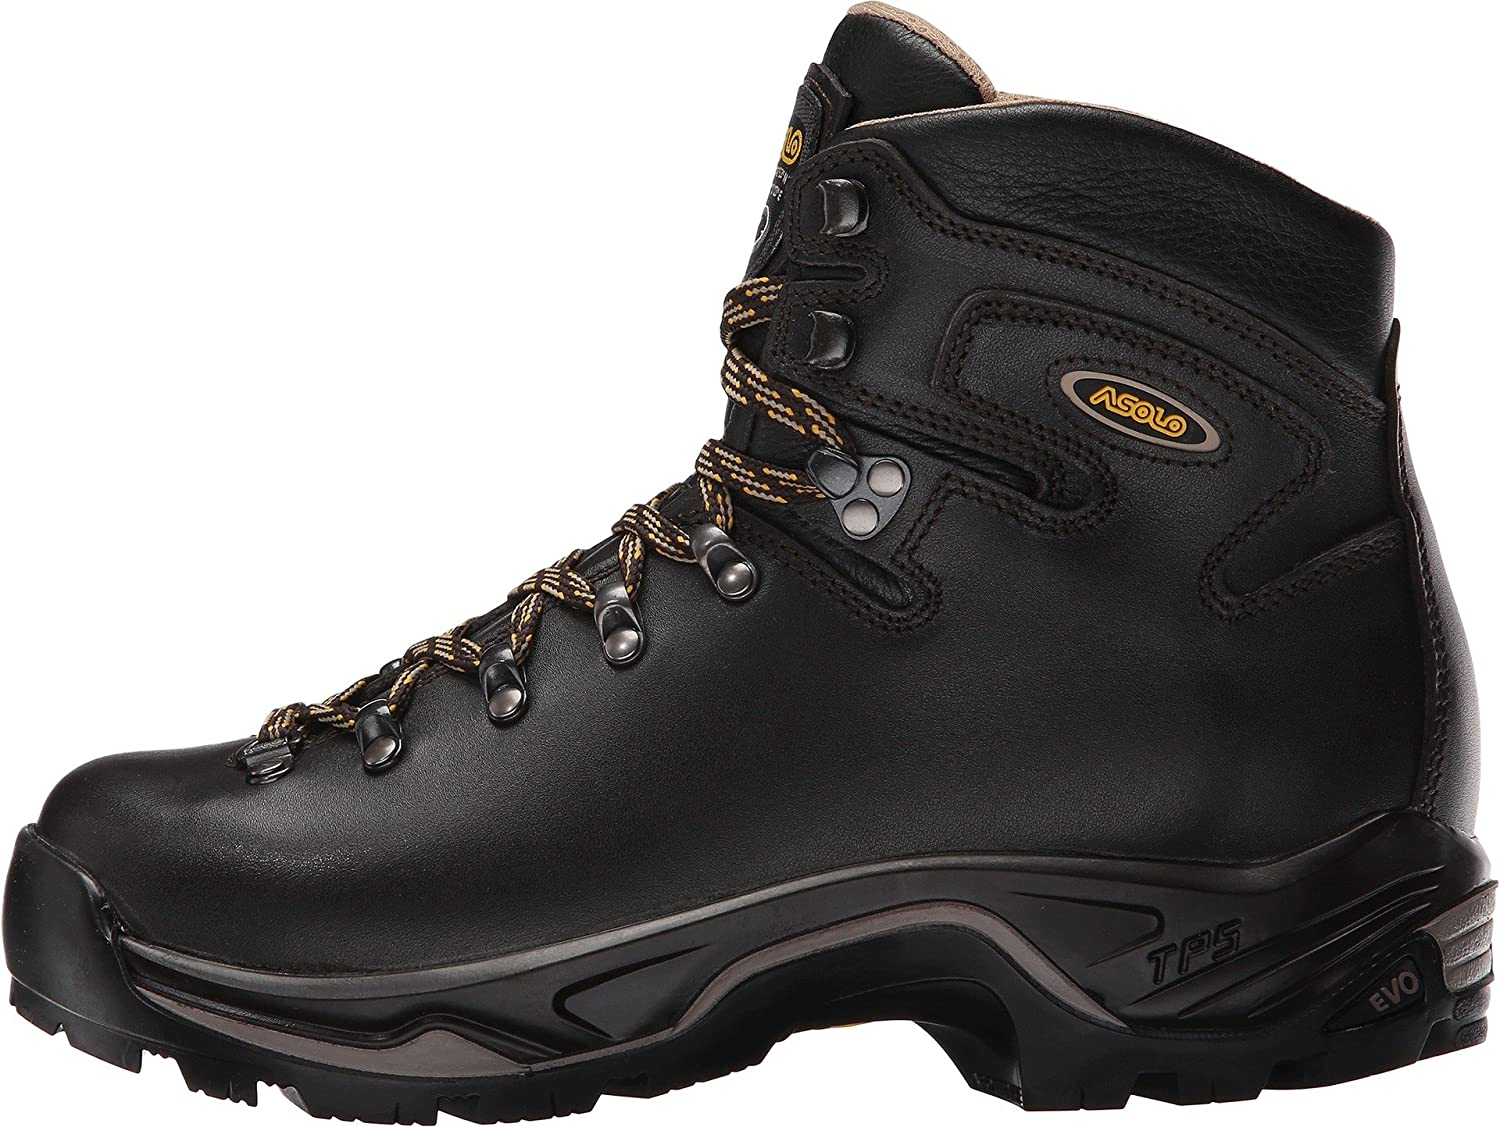 Asolo TPS 535 LTH V EVO Backpacking Boot - Women39;s B00WE3HFL8 5.5 B(M) US|Brown